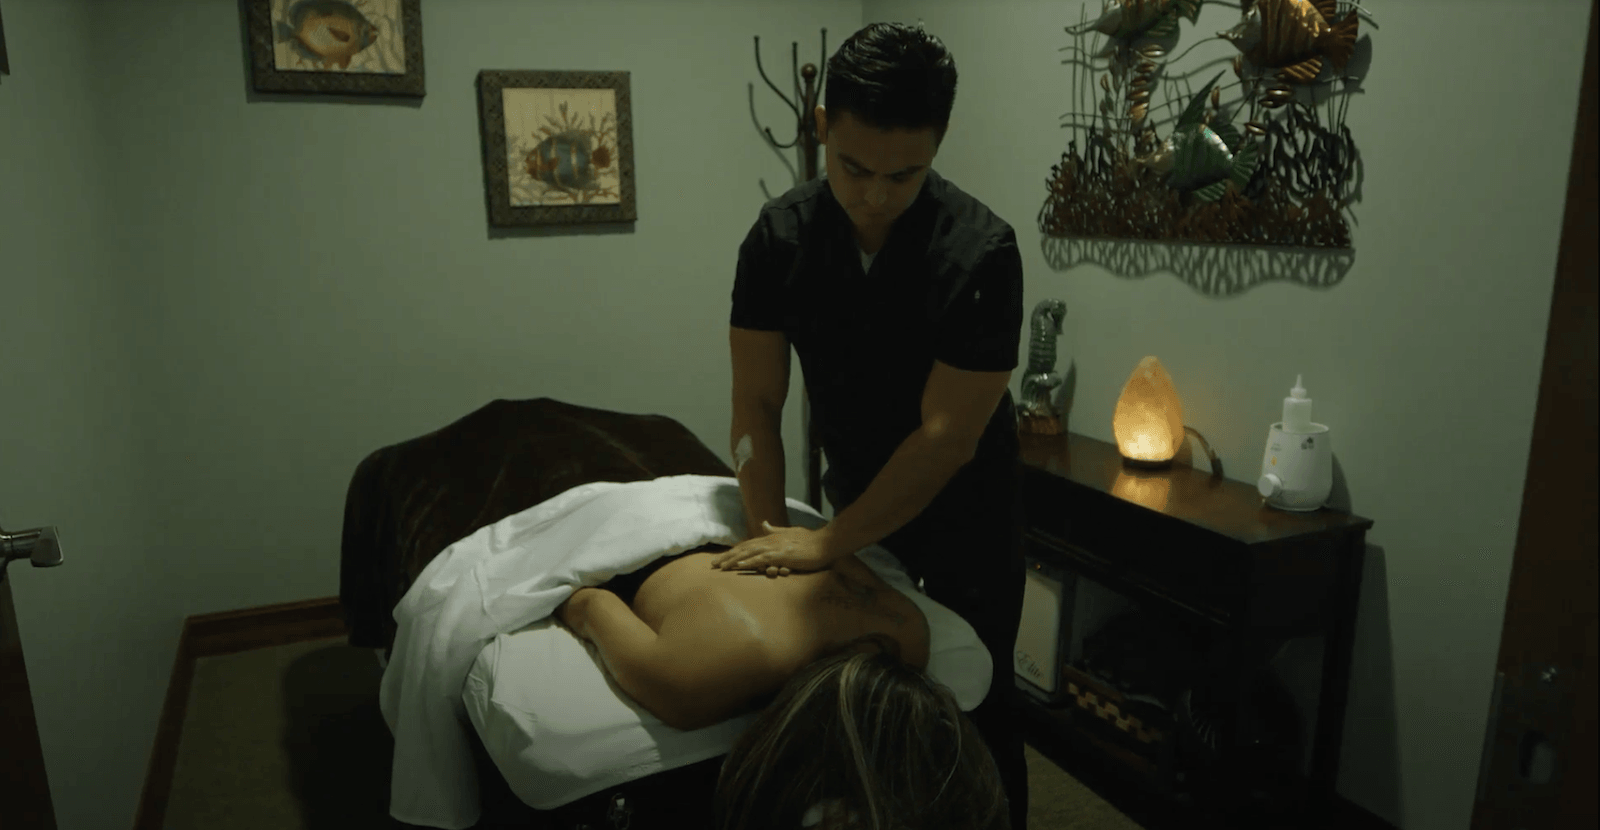 Massage Therapy Services Background